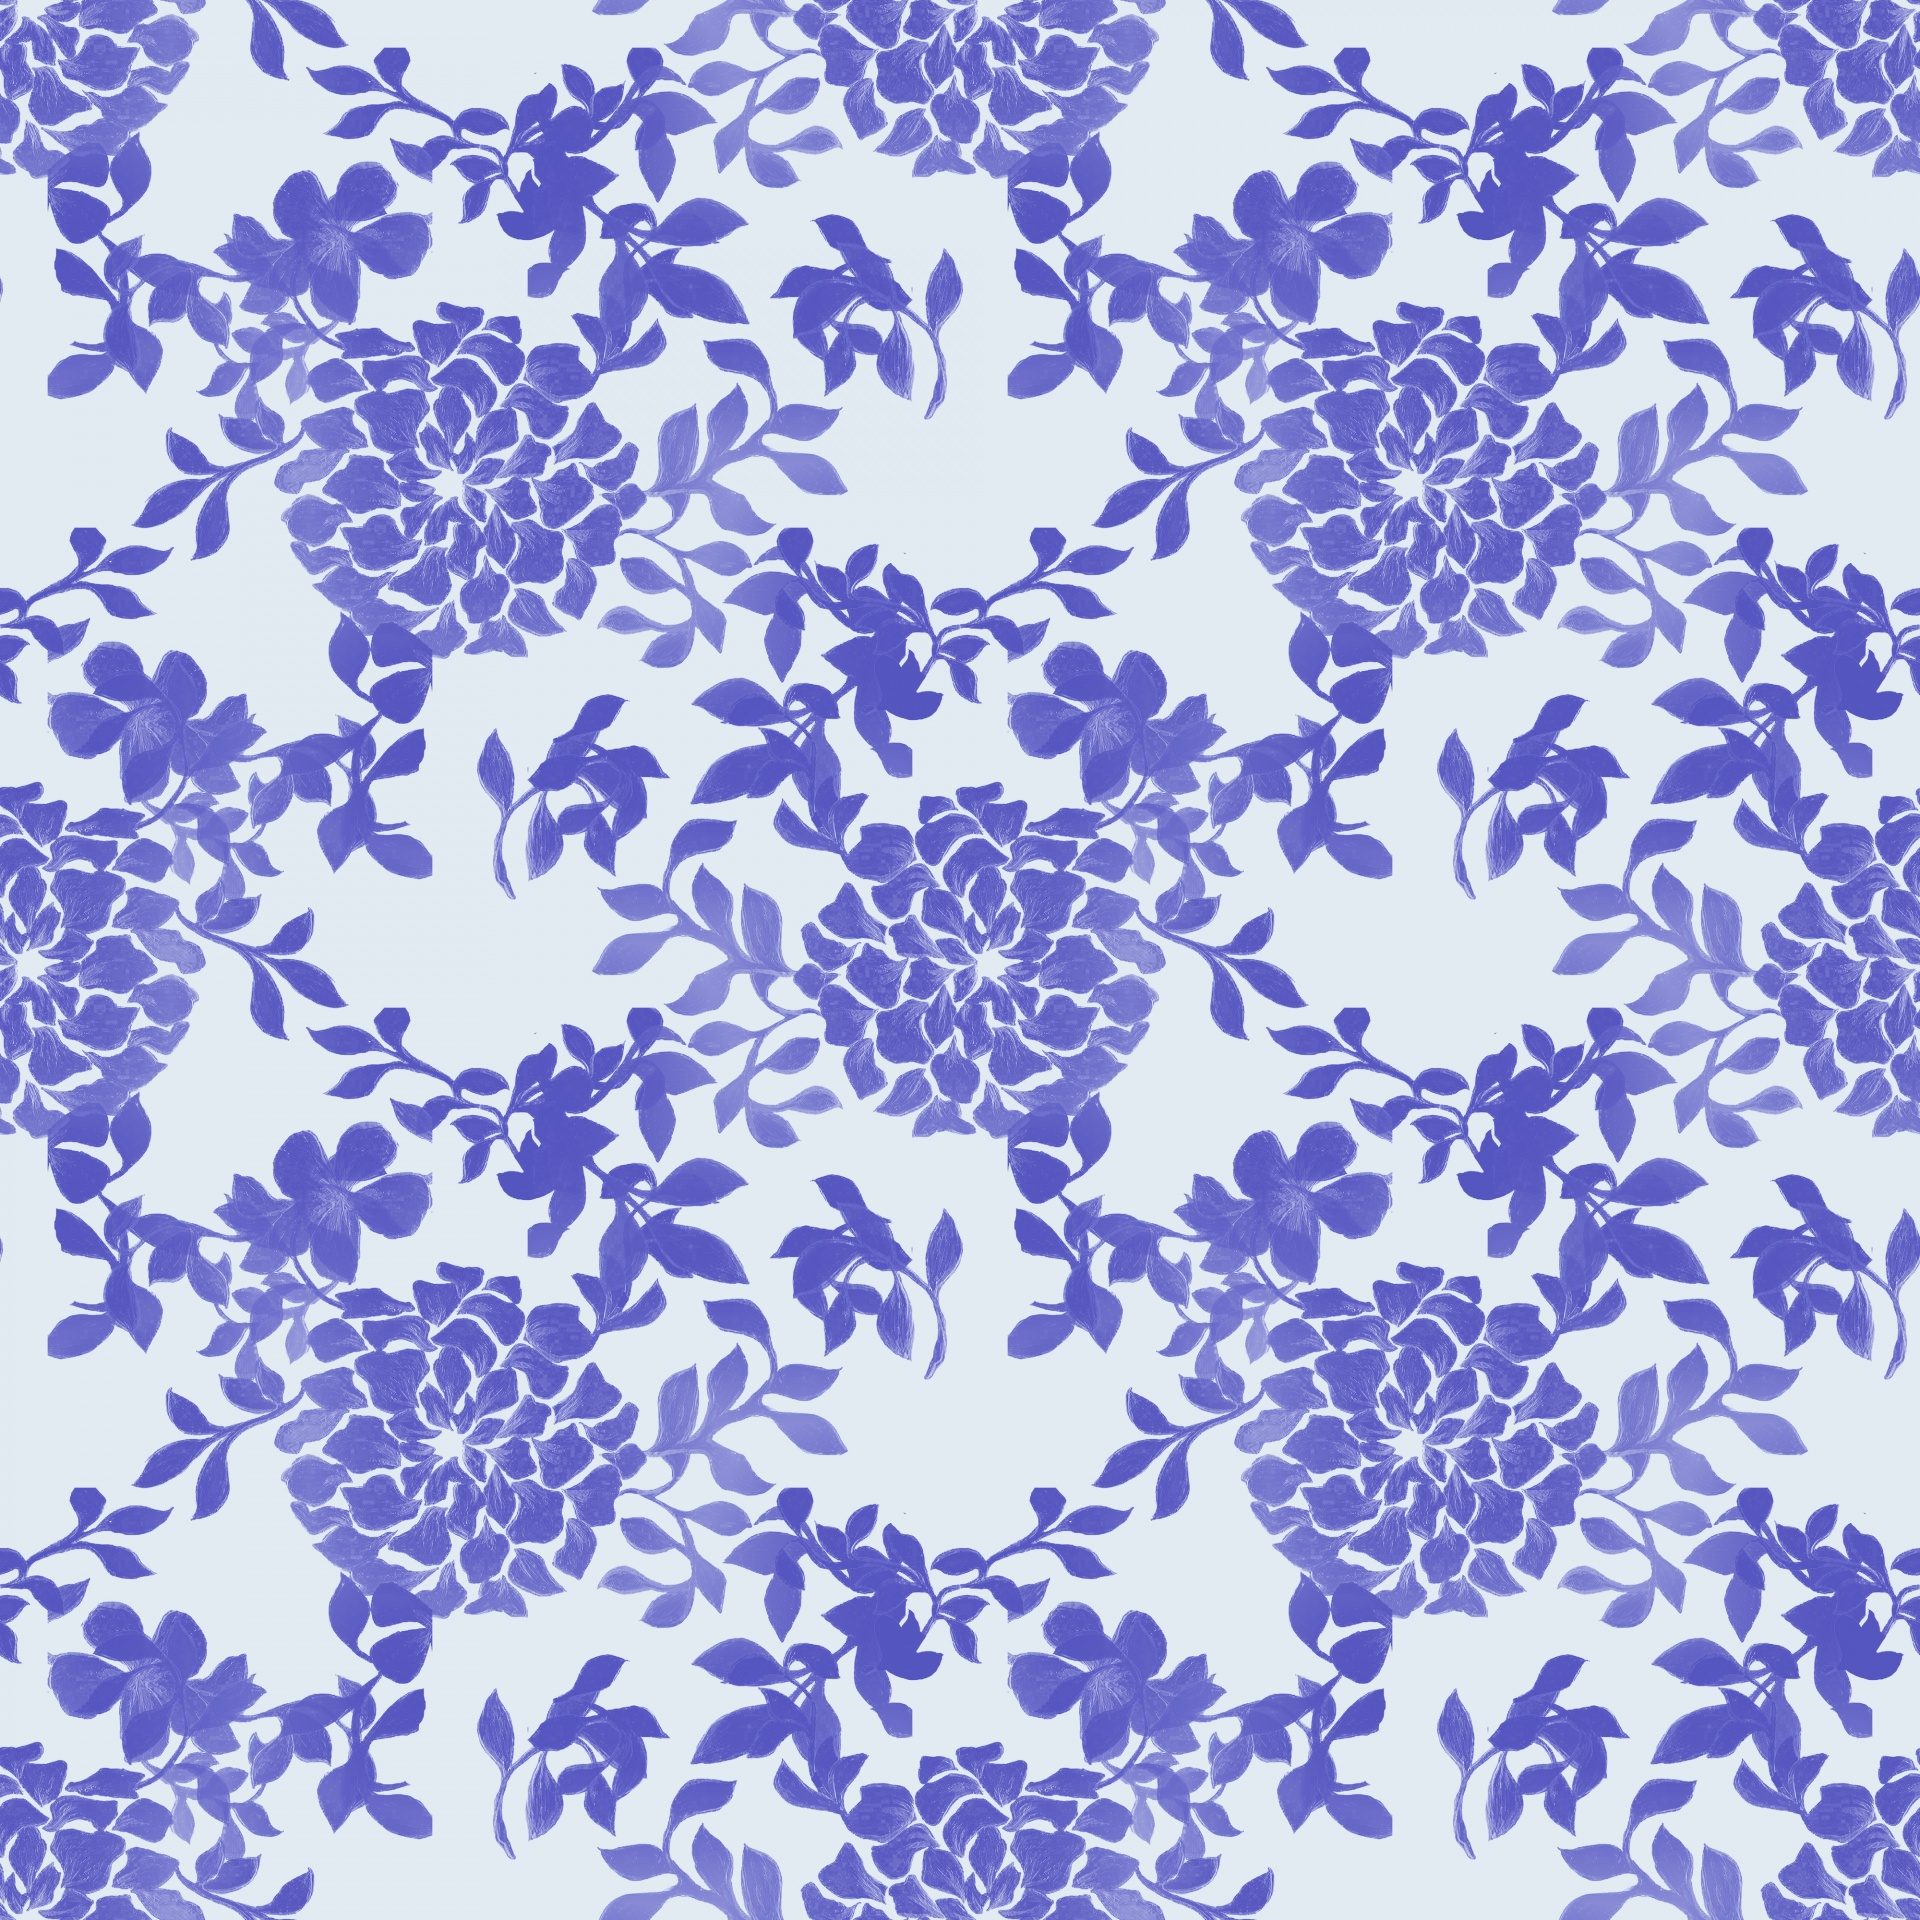 Floral Wallpaper Background Pattern Blue Free Image From Needpix Com